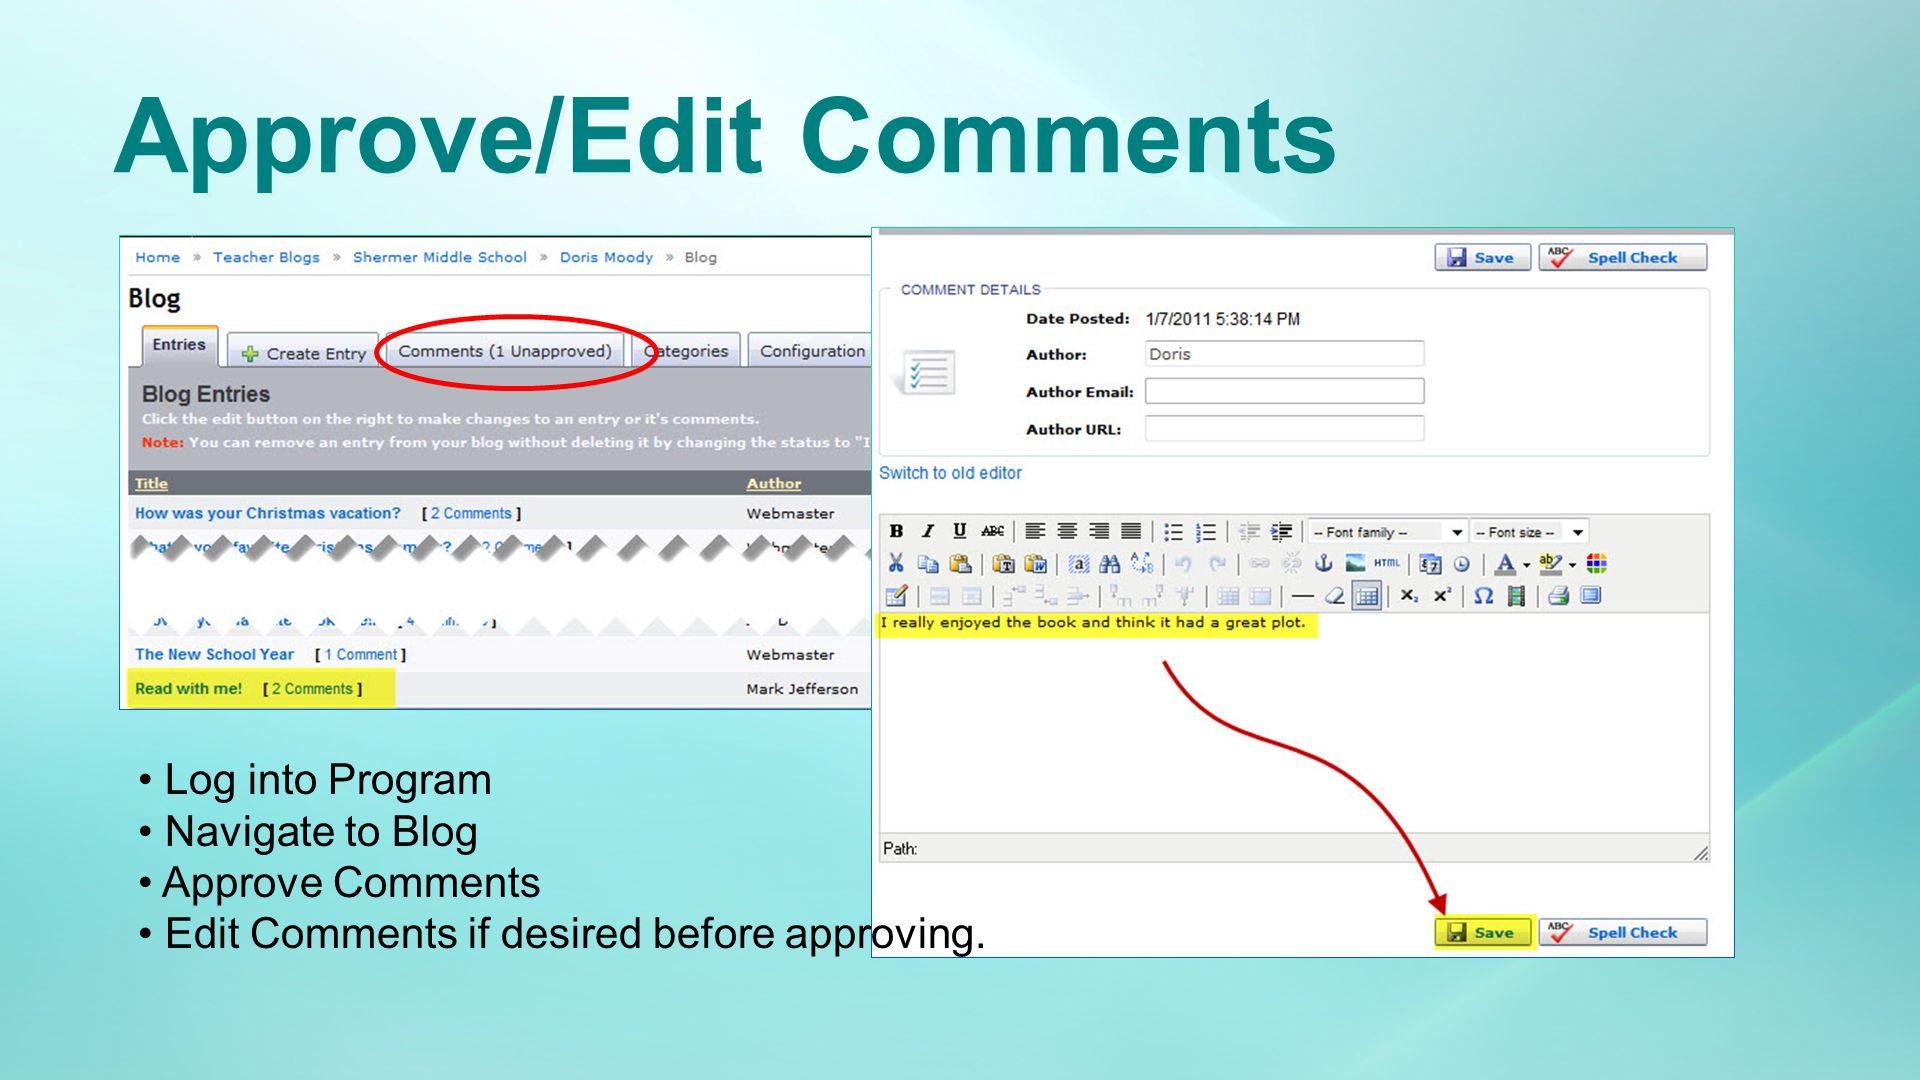 Approve/Edit Comments Log into Program Navigate to Blog Approve Comments Edit Comments if desired before approving.